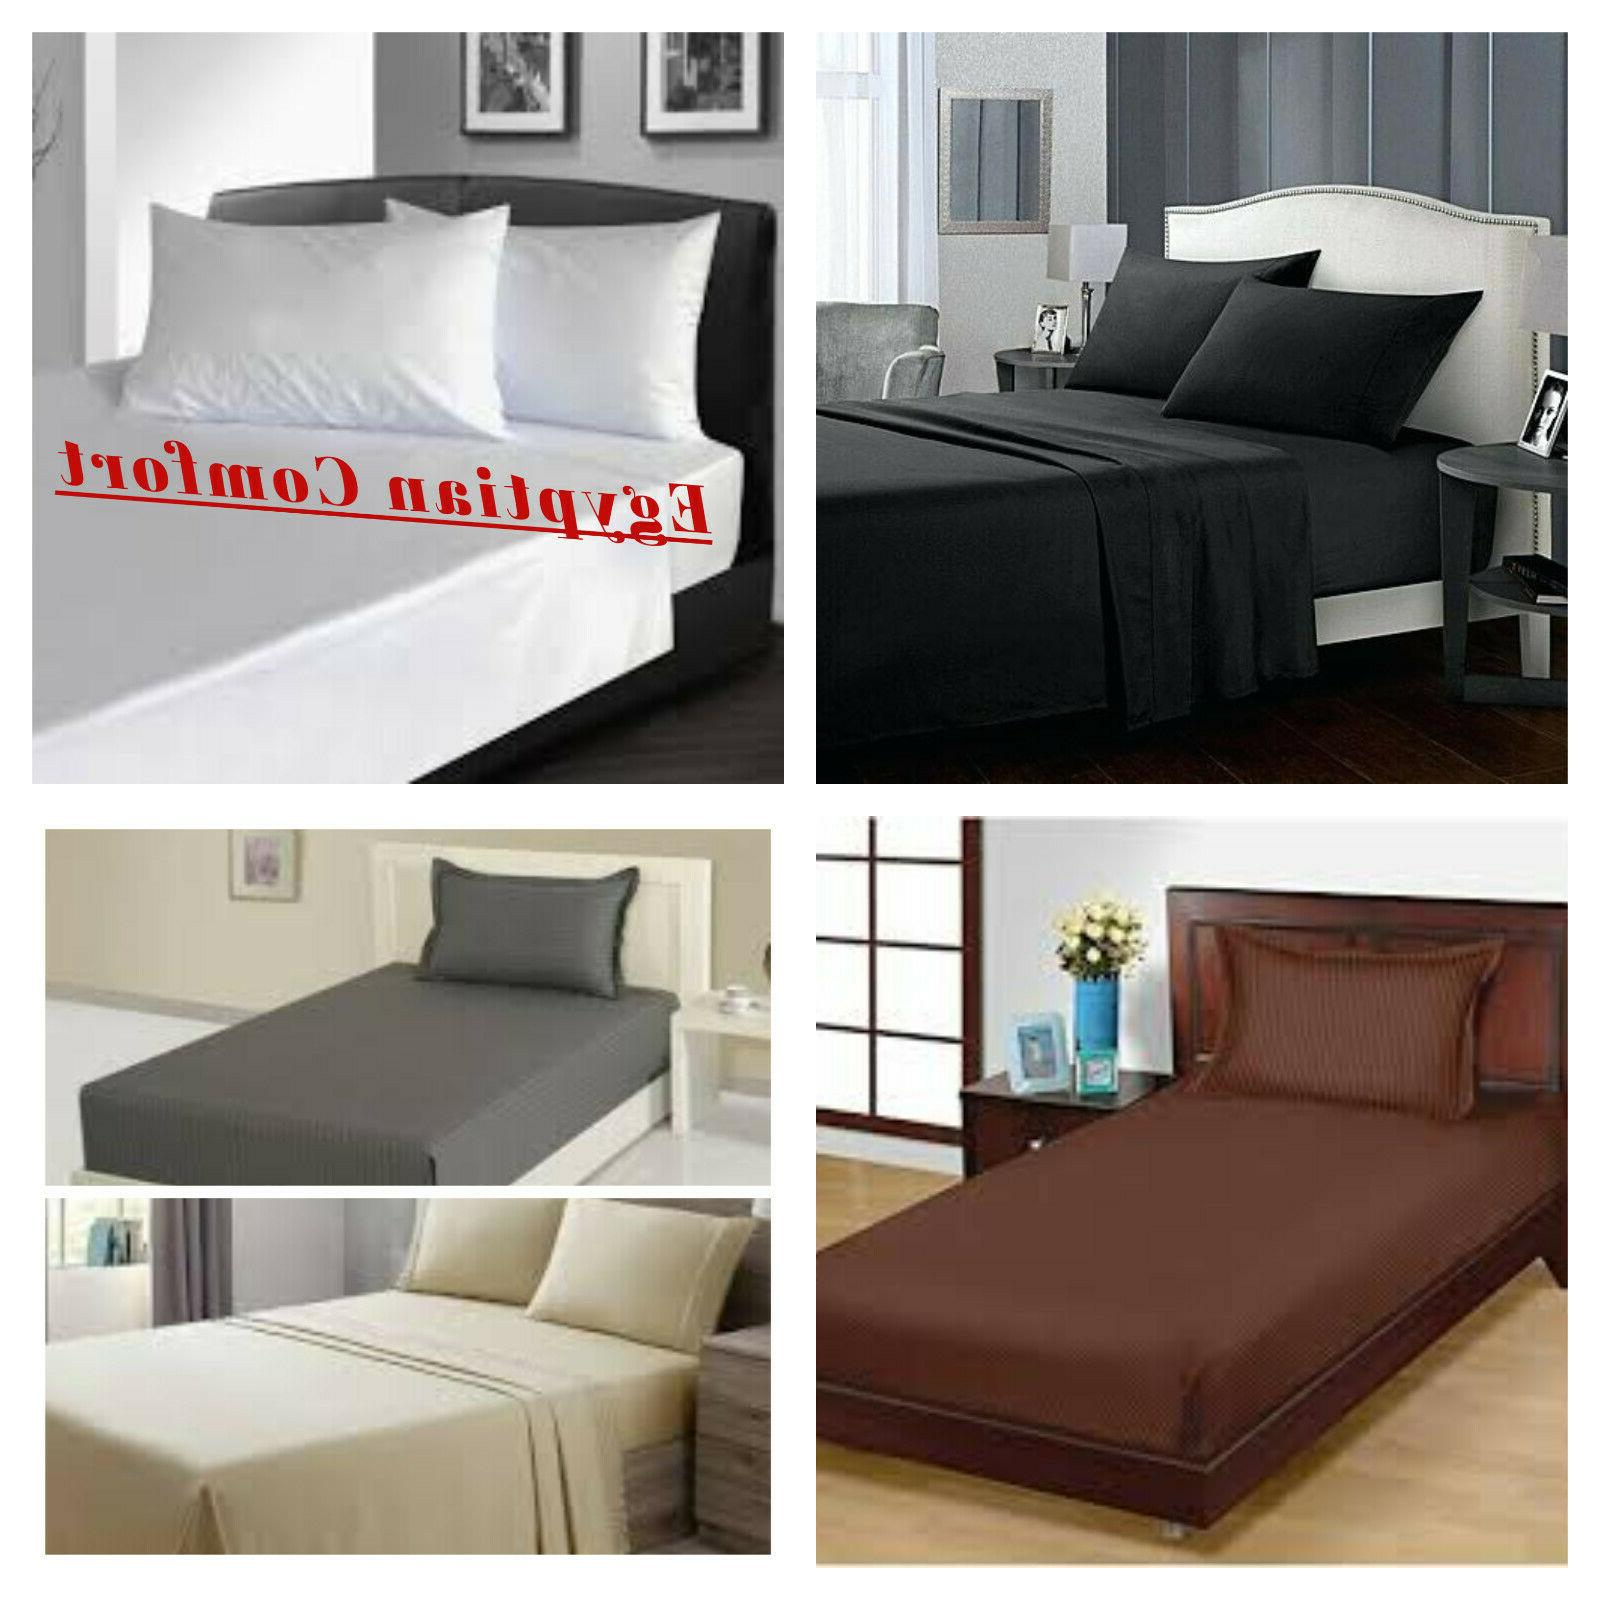 egyptian comfort 1900 series flat bed sheets